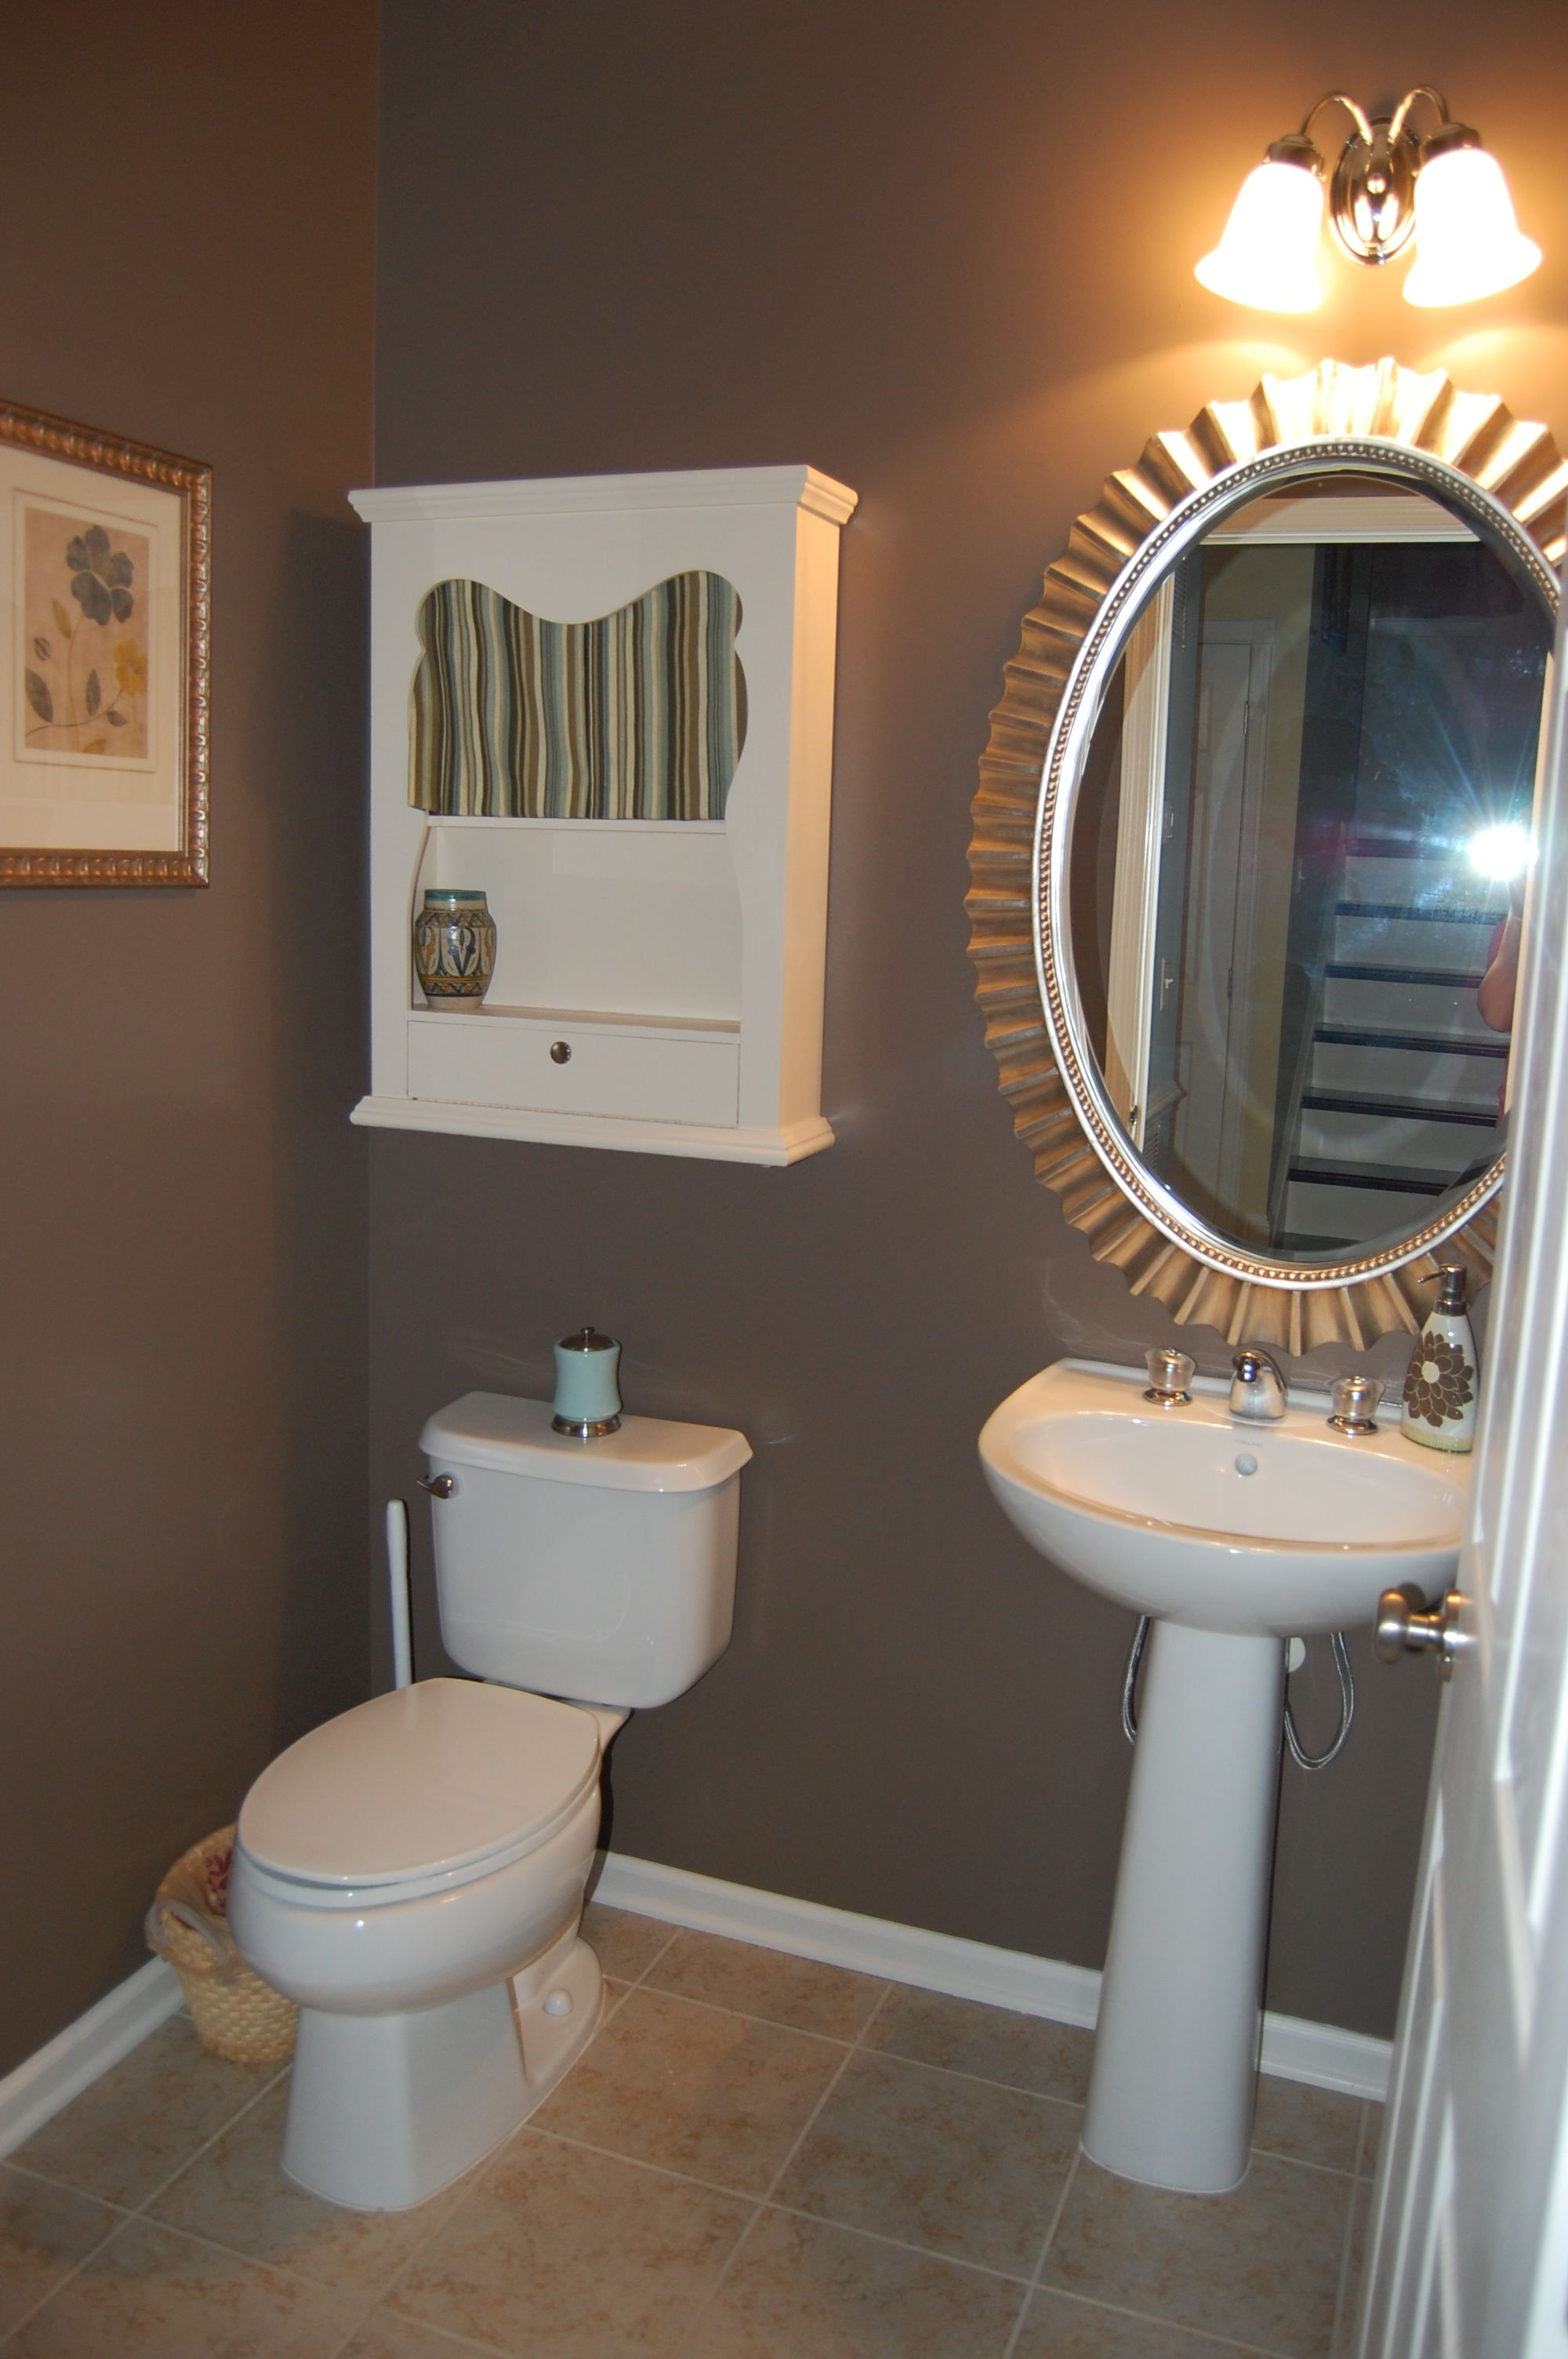 Powder room bathroom color projects pinterest like for Powder room color ideas